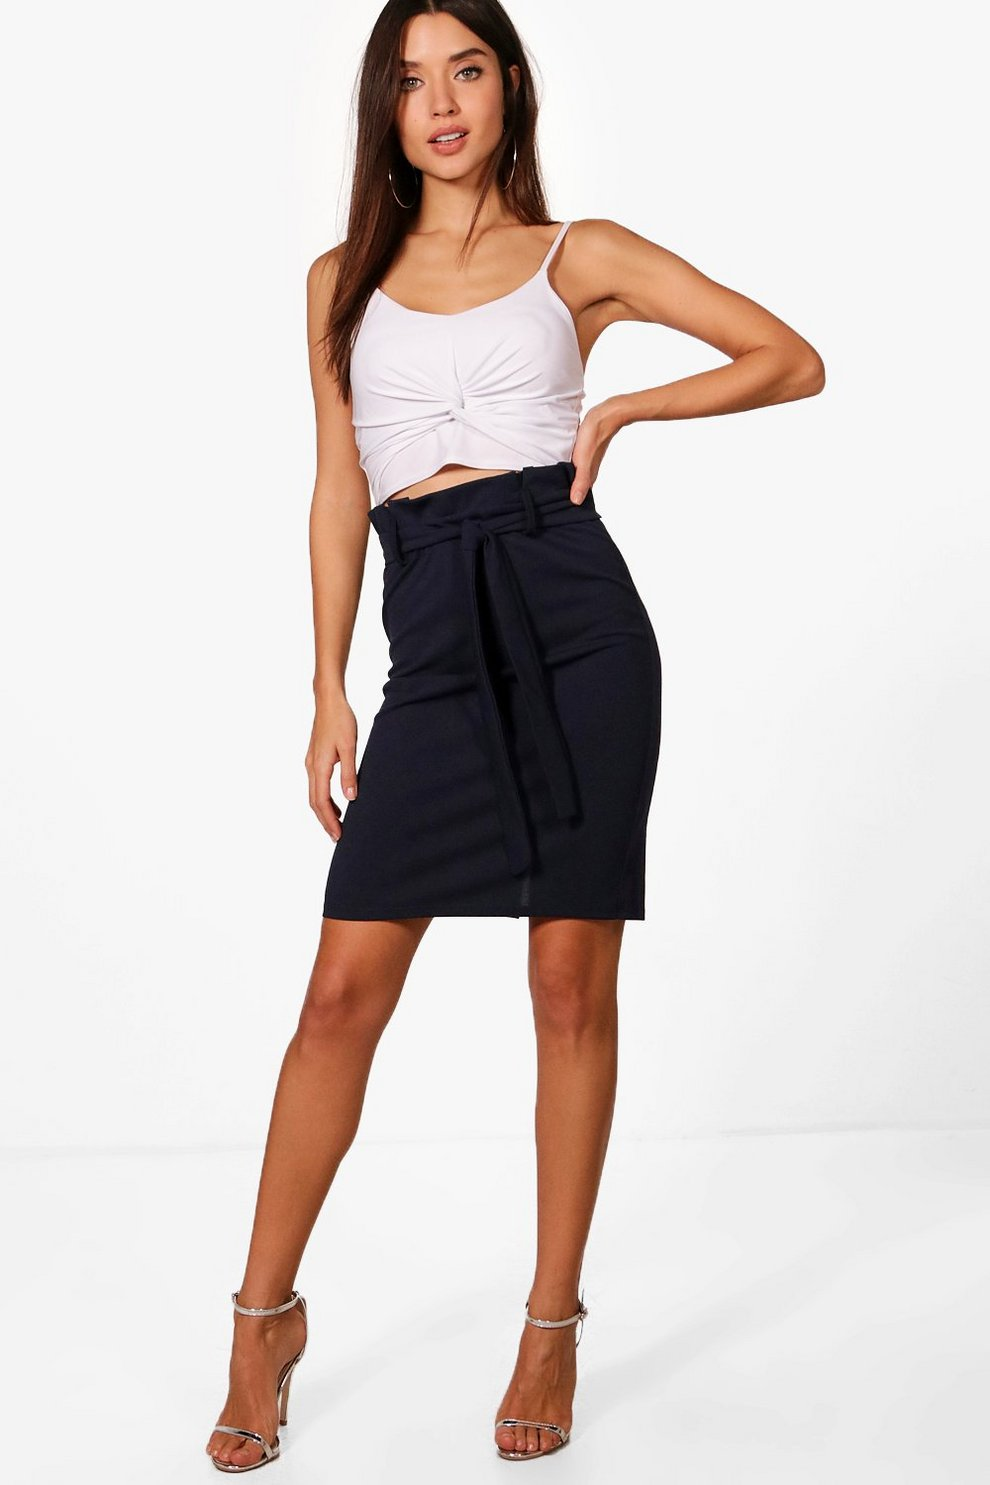 Boohoo Tailored Paper Waist Mini Skirt Purchase Cheap Outlet With Credit Card ashdEed